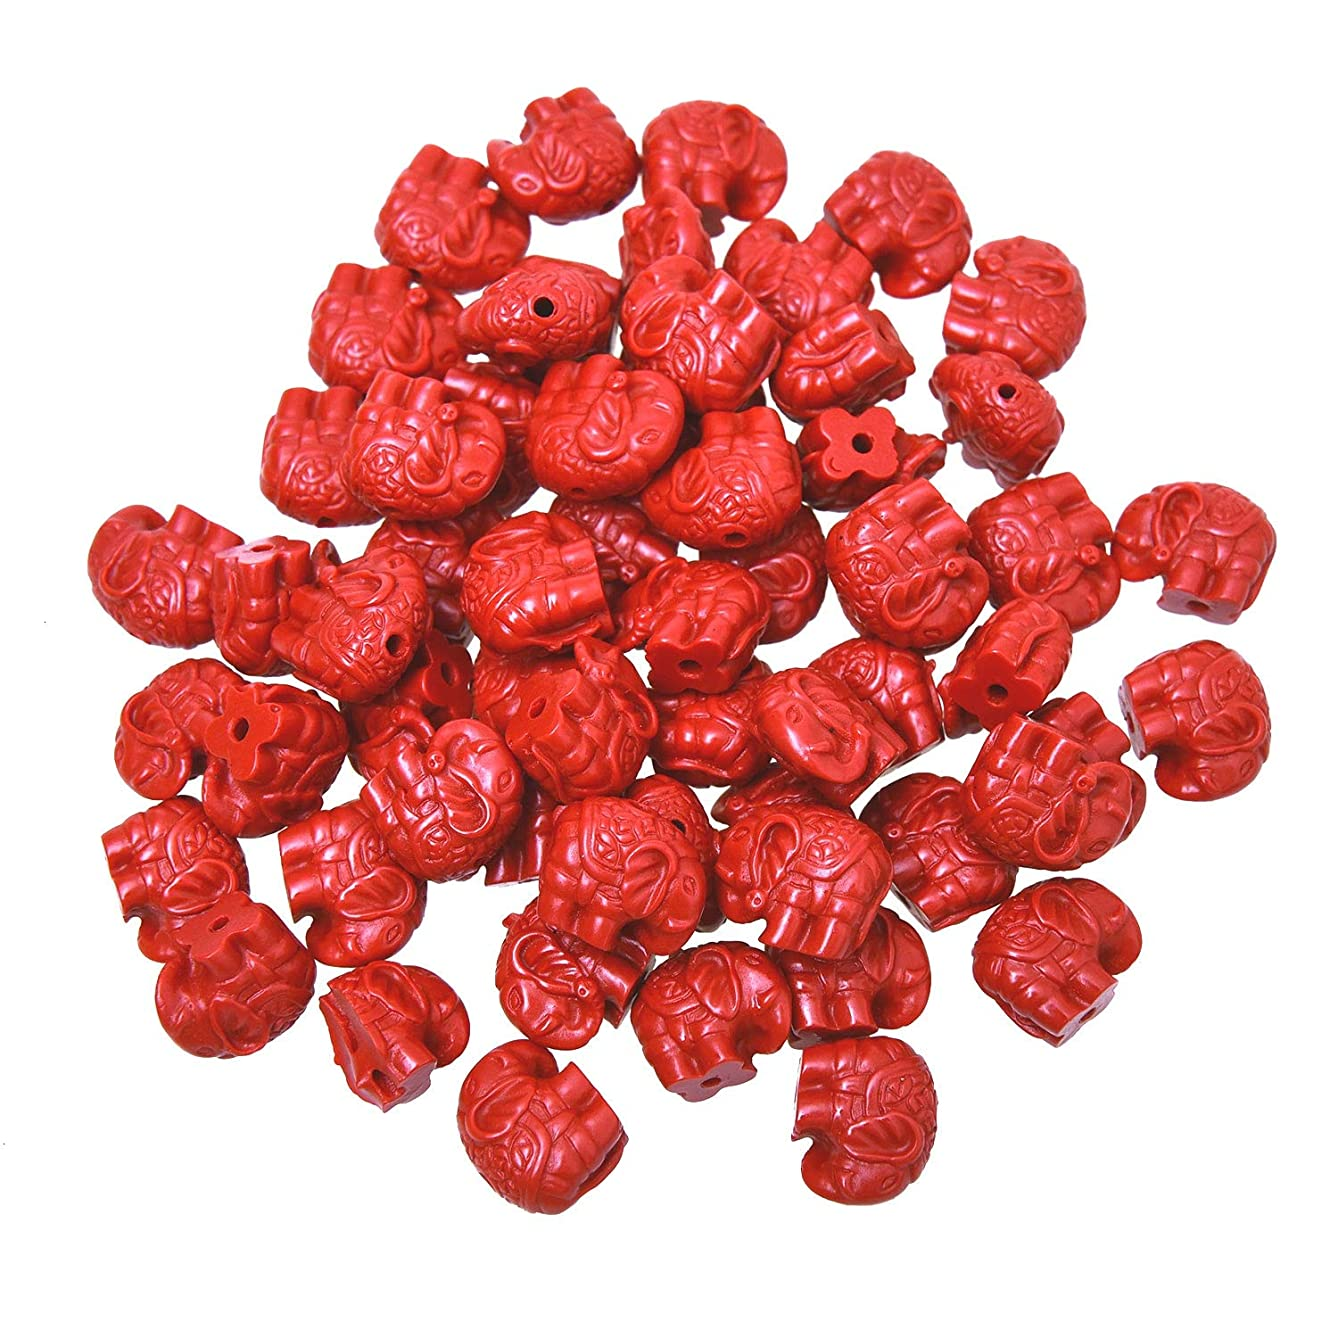 Monrocco 60 Pcs Cinnabar Carved 14mm Elephant Shape Loose Beads Craft DIY Jewelry Making Finding Supplies